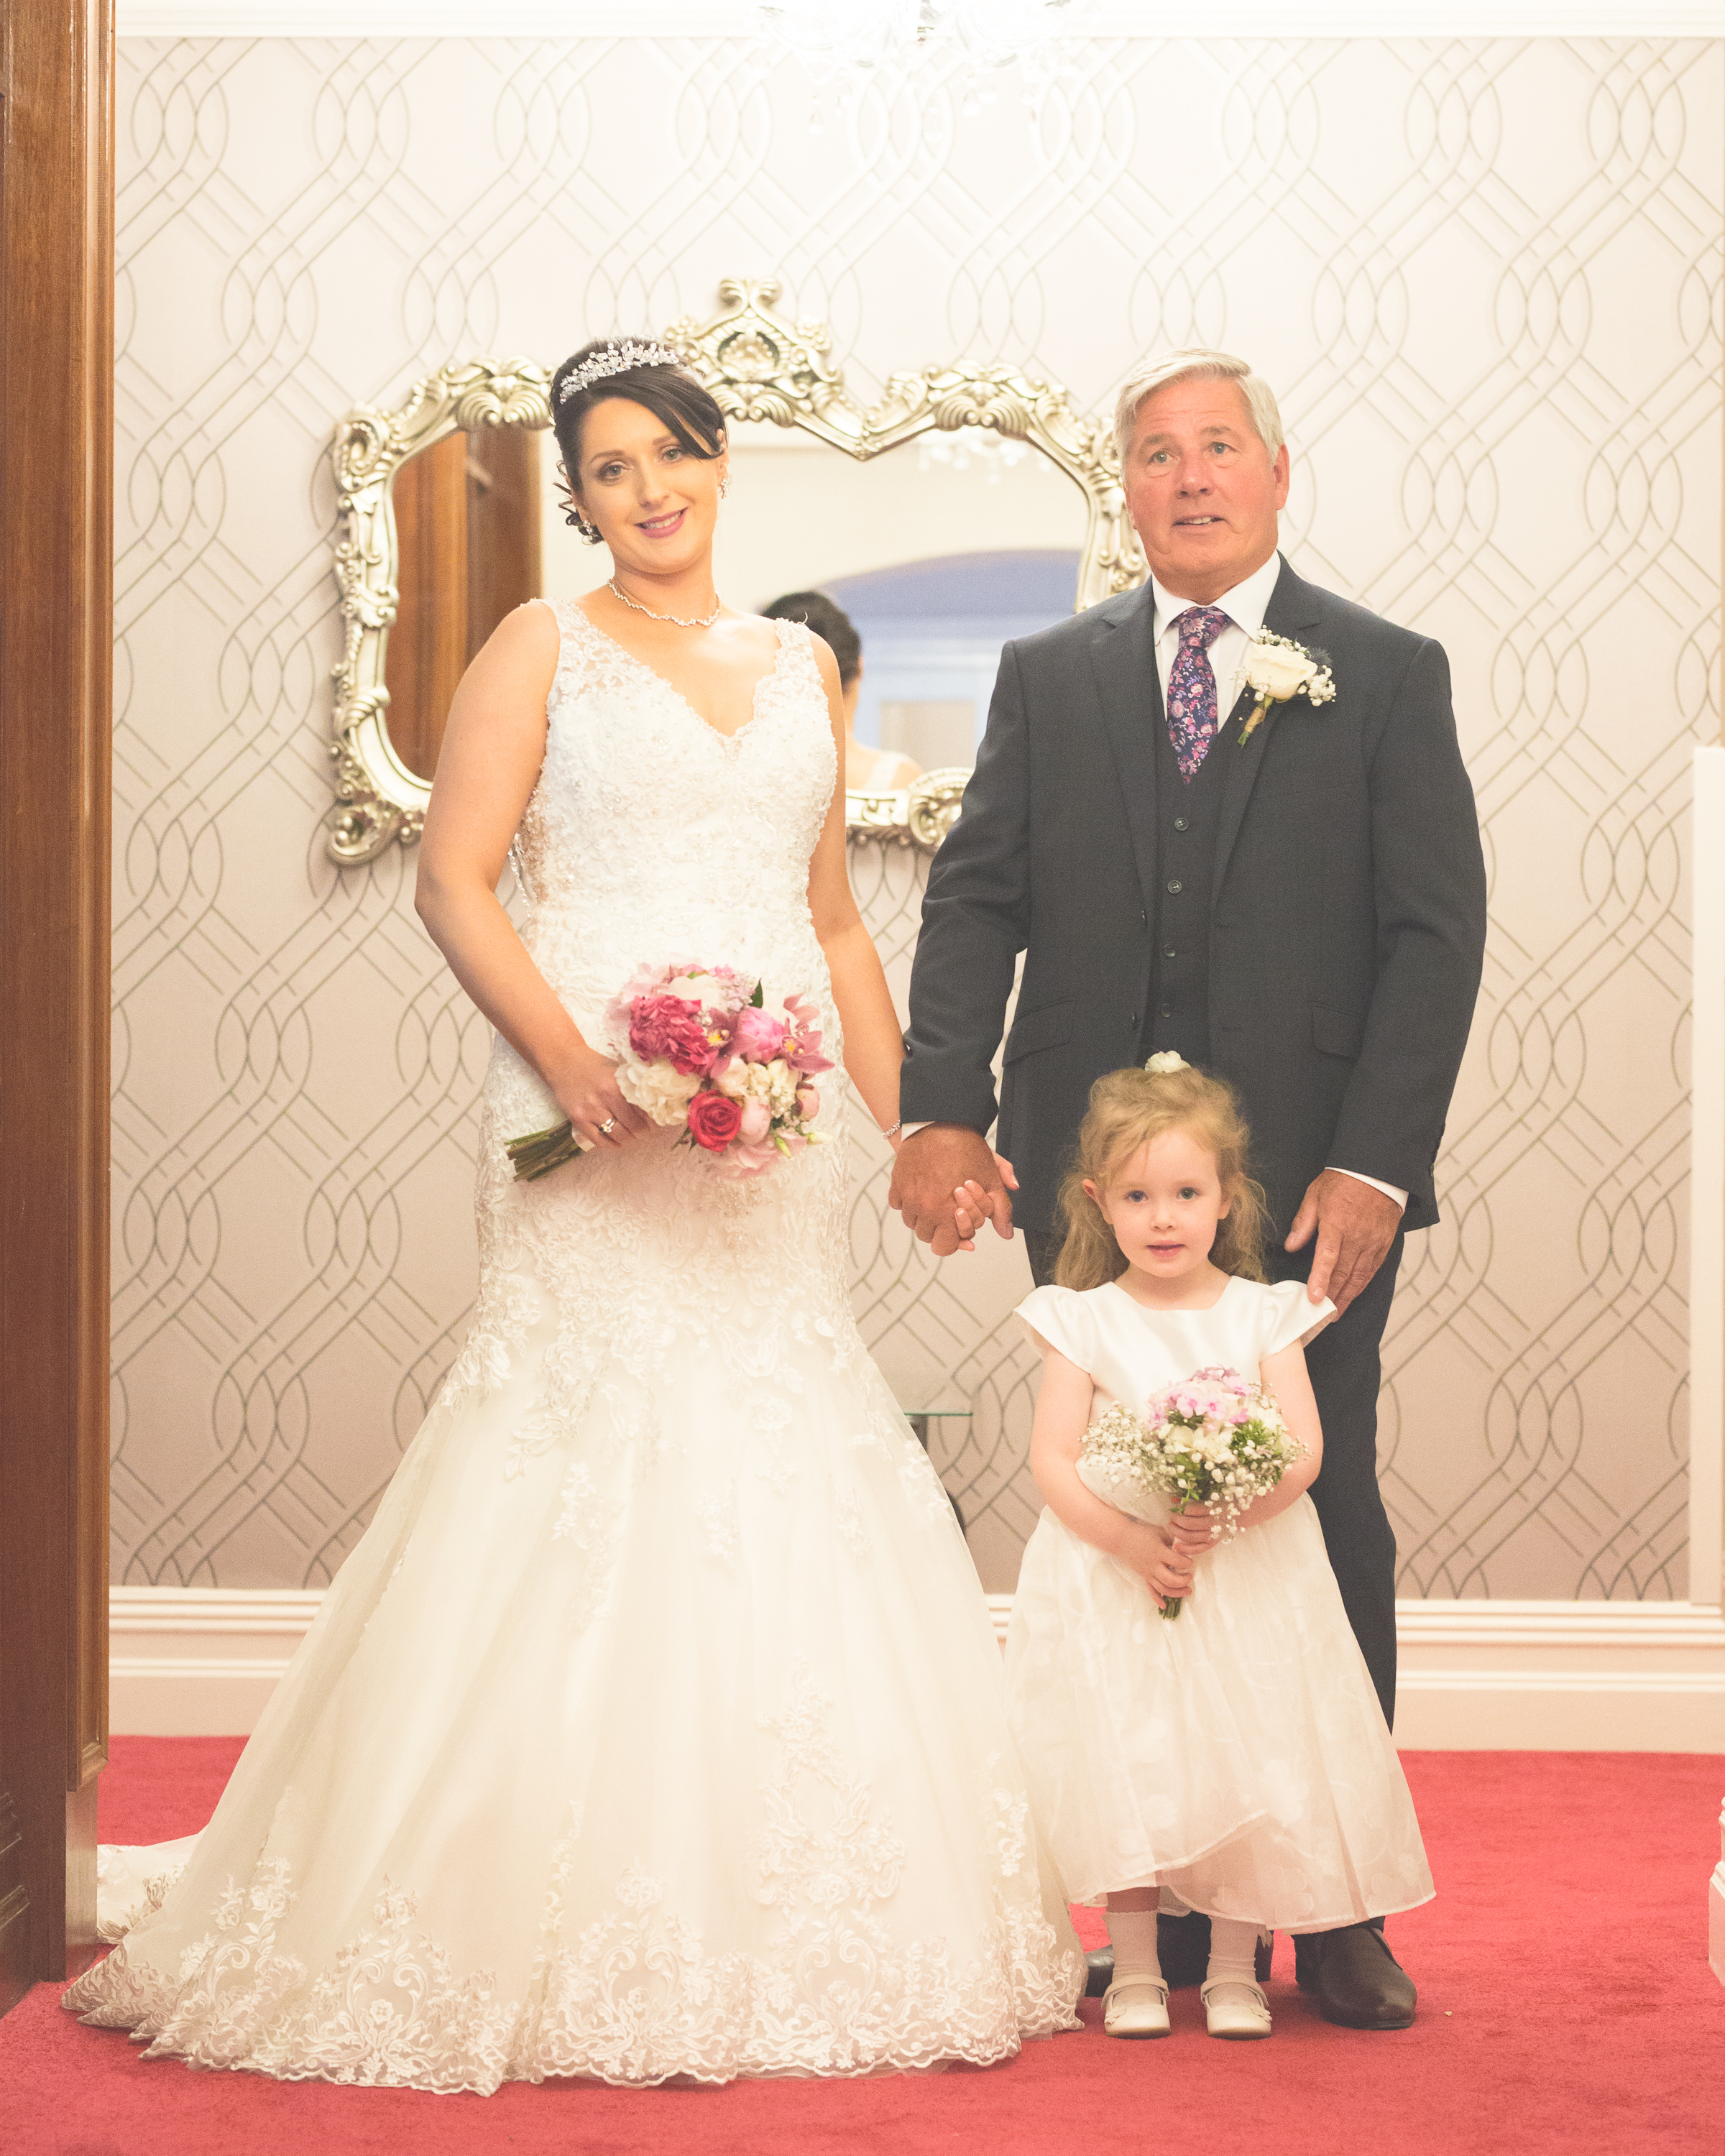 Northern Ireland Wedding Photographer | Brian McEwan | Louise & Darren-164.jpg